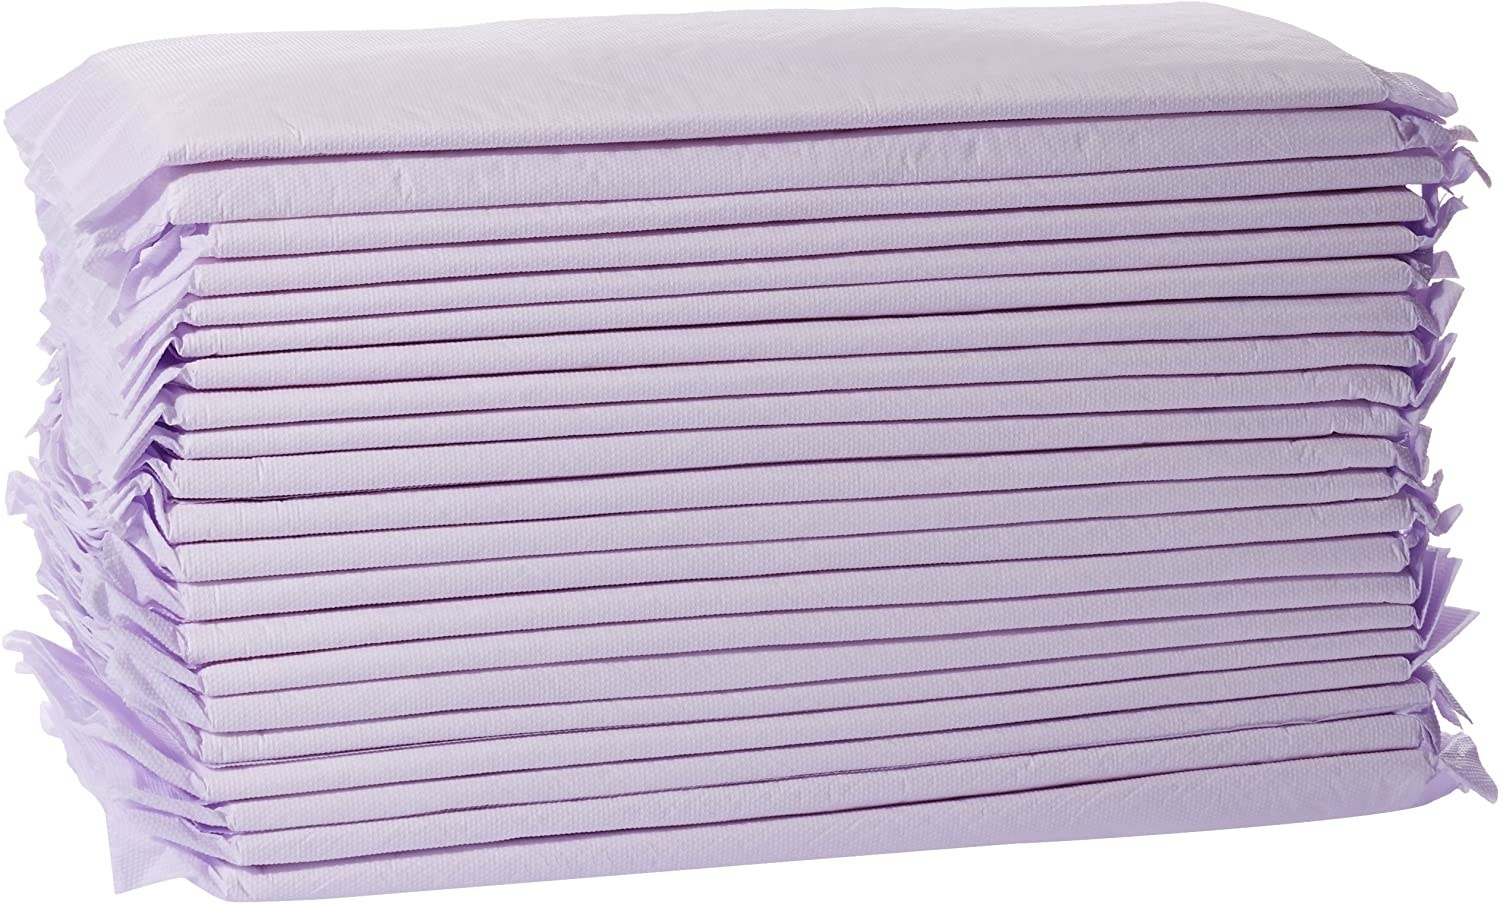 a purple stack of pads